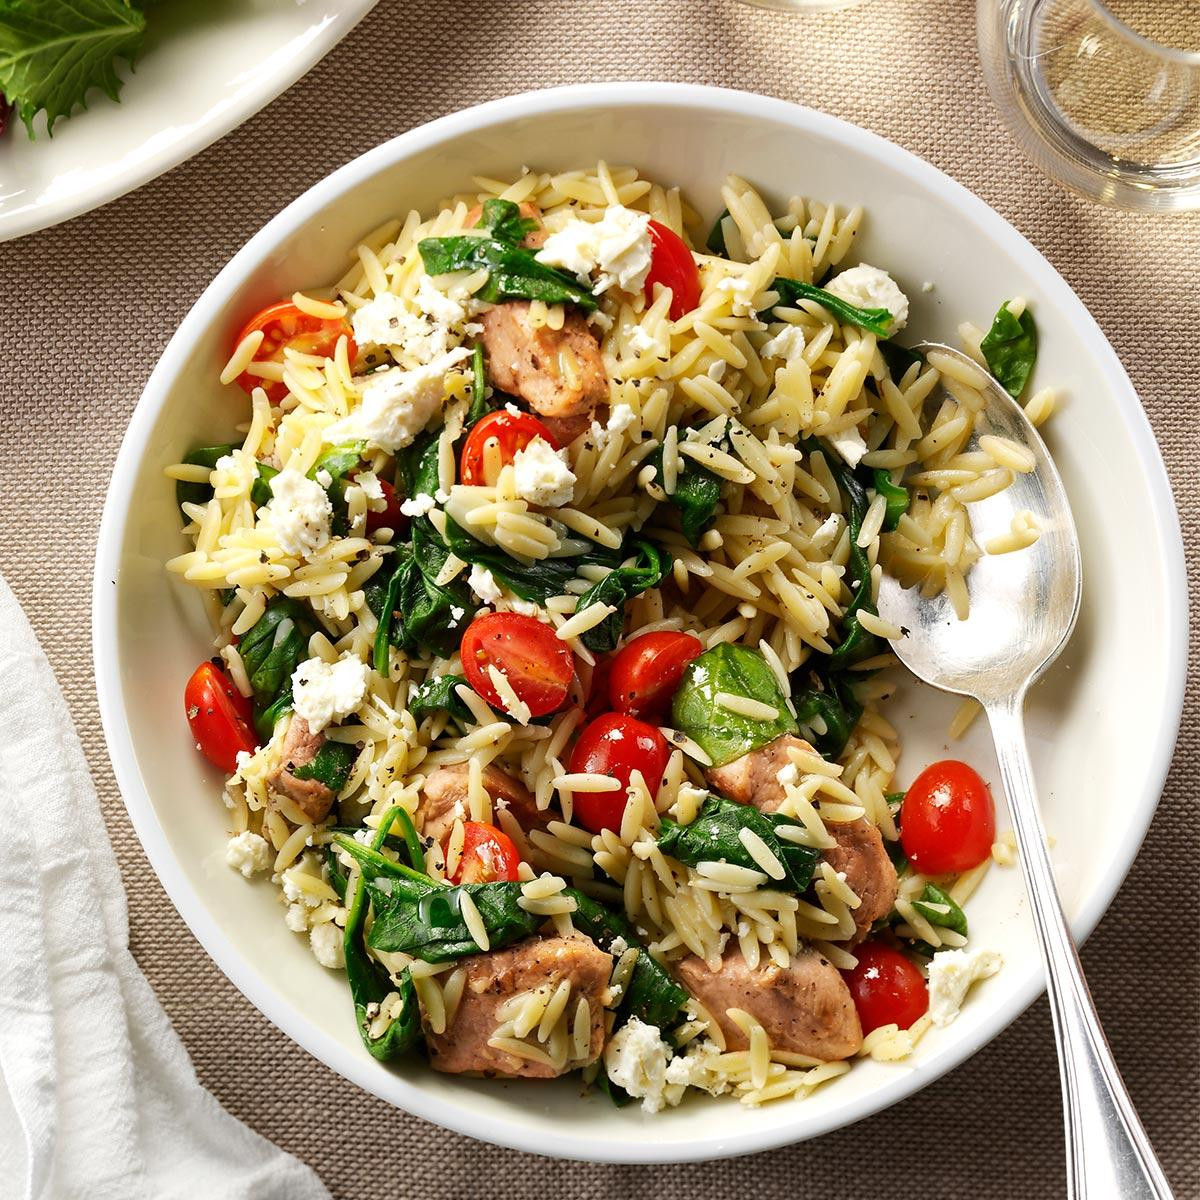 Healthy Food Recipes For Dinner  Mediterranean Pork and Orzo Recipe